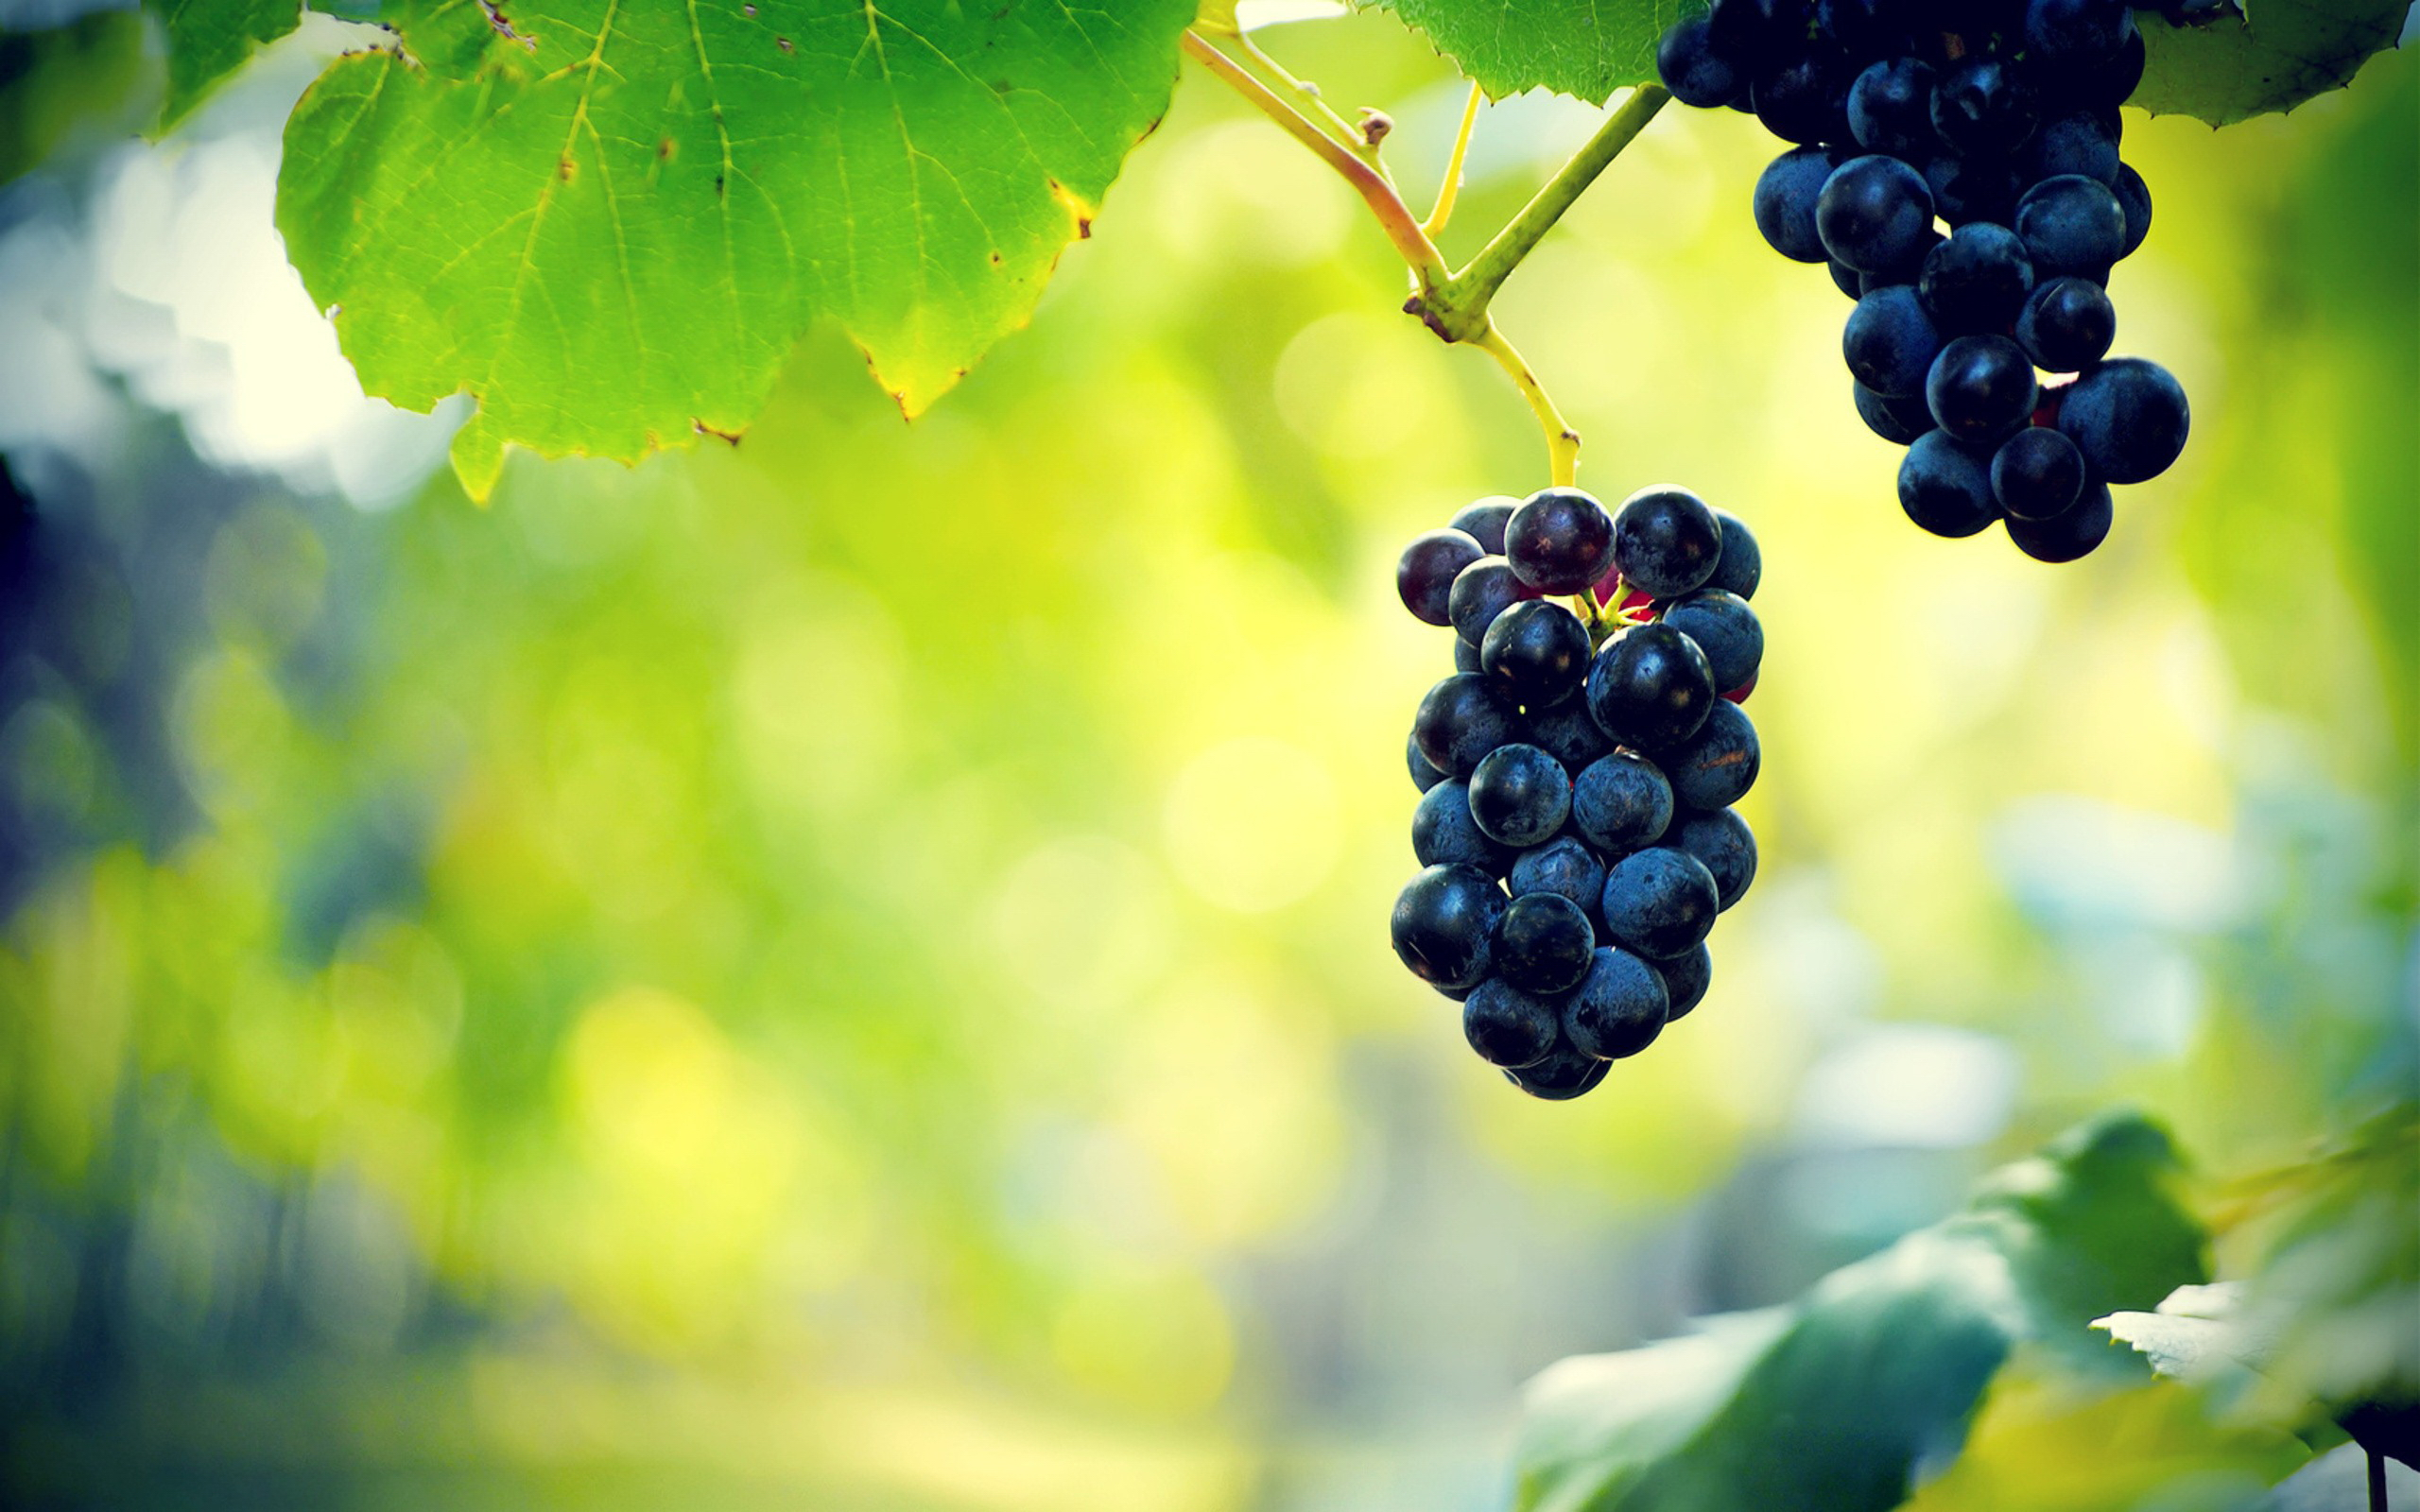 Grapes Wallpapers 2560x1600